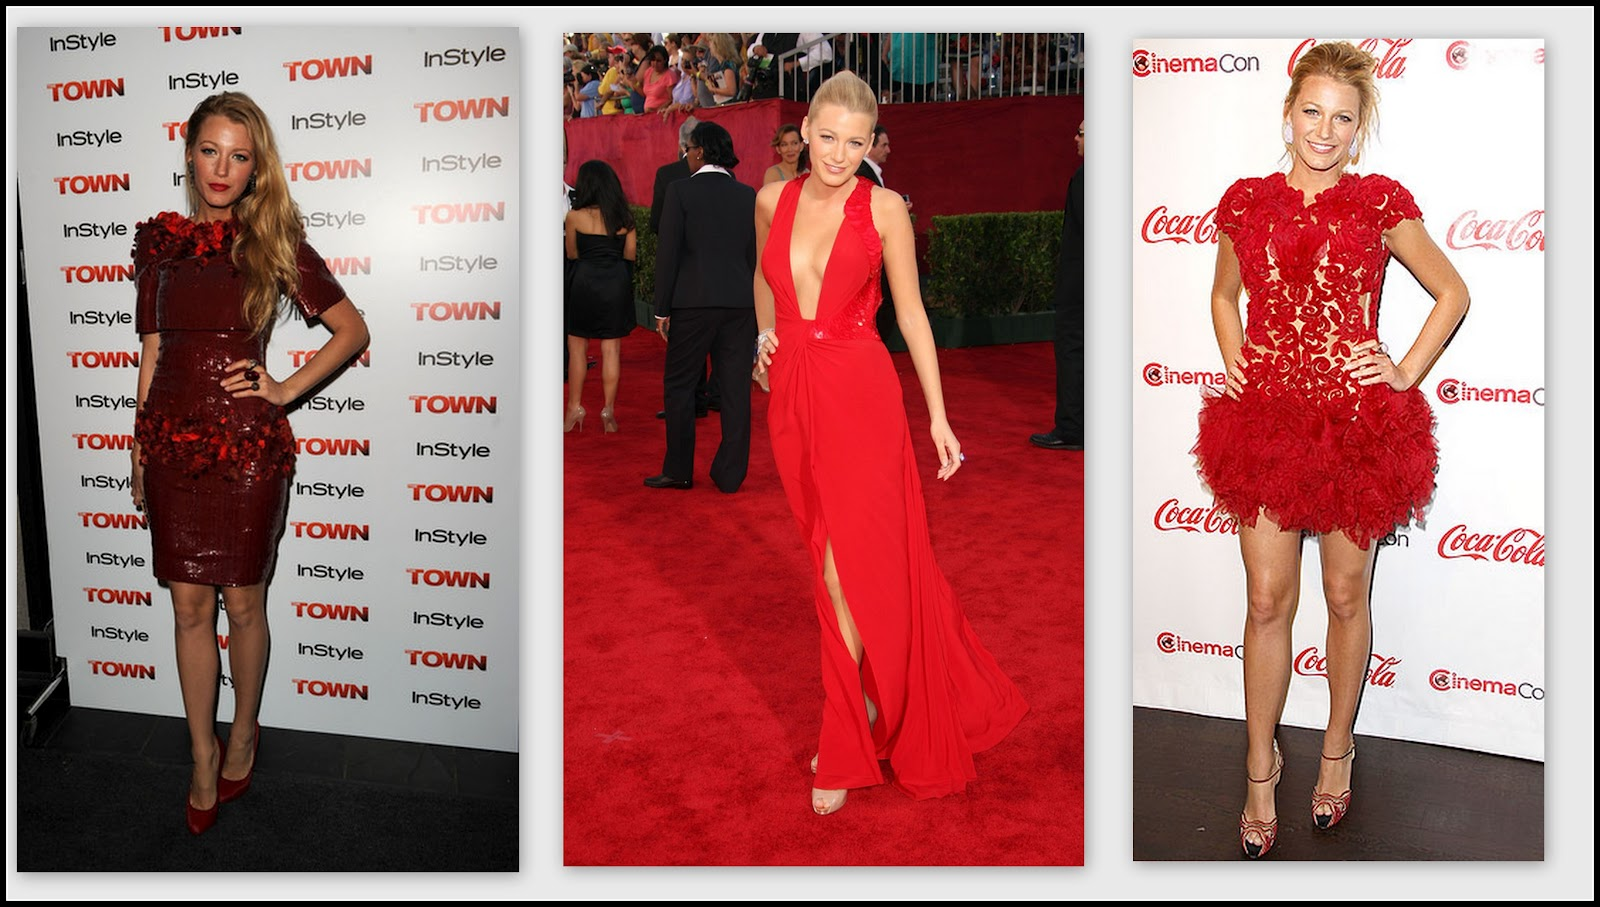 http://4.bp.blogspot.com/-Ske-eY_tAn4/T5cOXncQqNI/AAAAAAAAB38/Z8-a_PUeMd0/s1600/Style+Crush-Blake+Lively-+Red+Carpet+Look-Red+dress.jpg